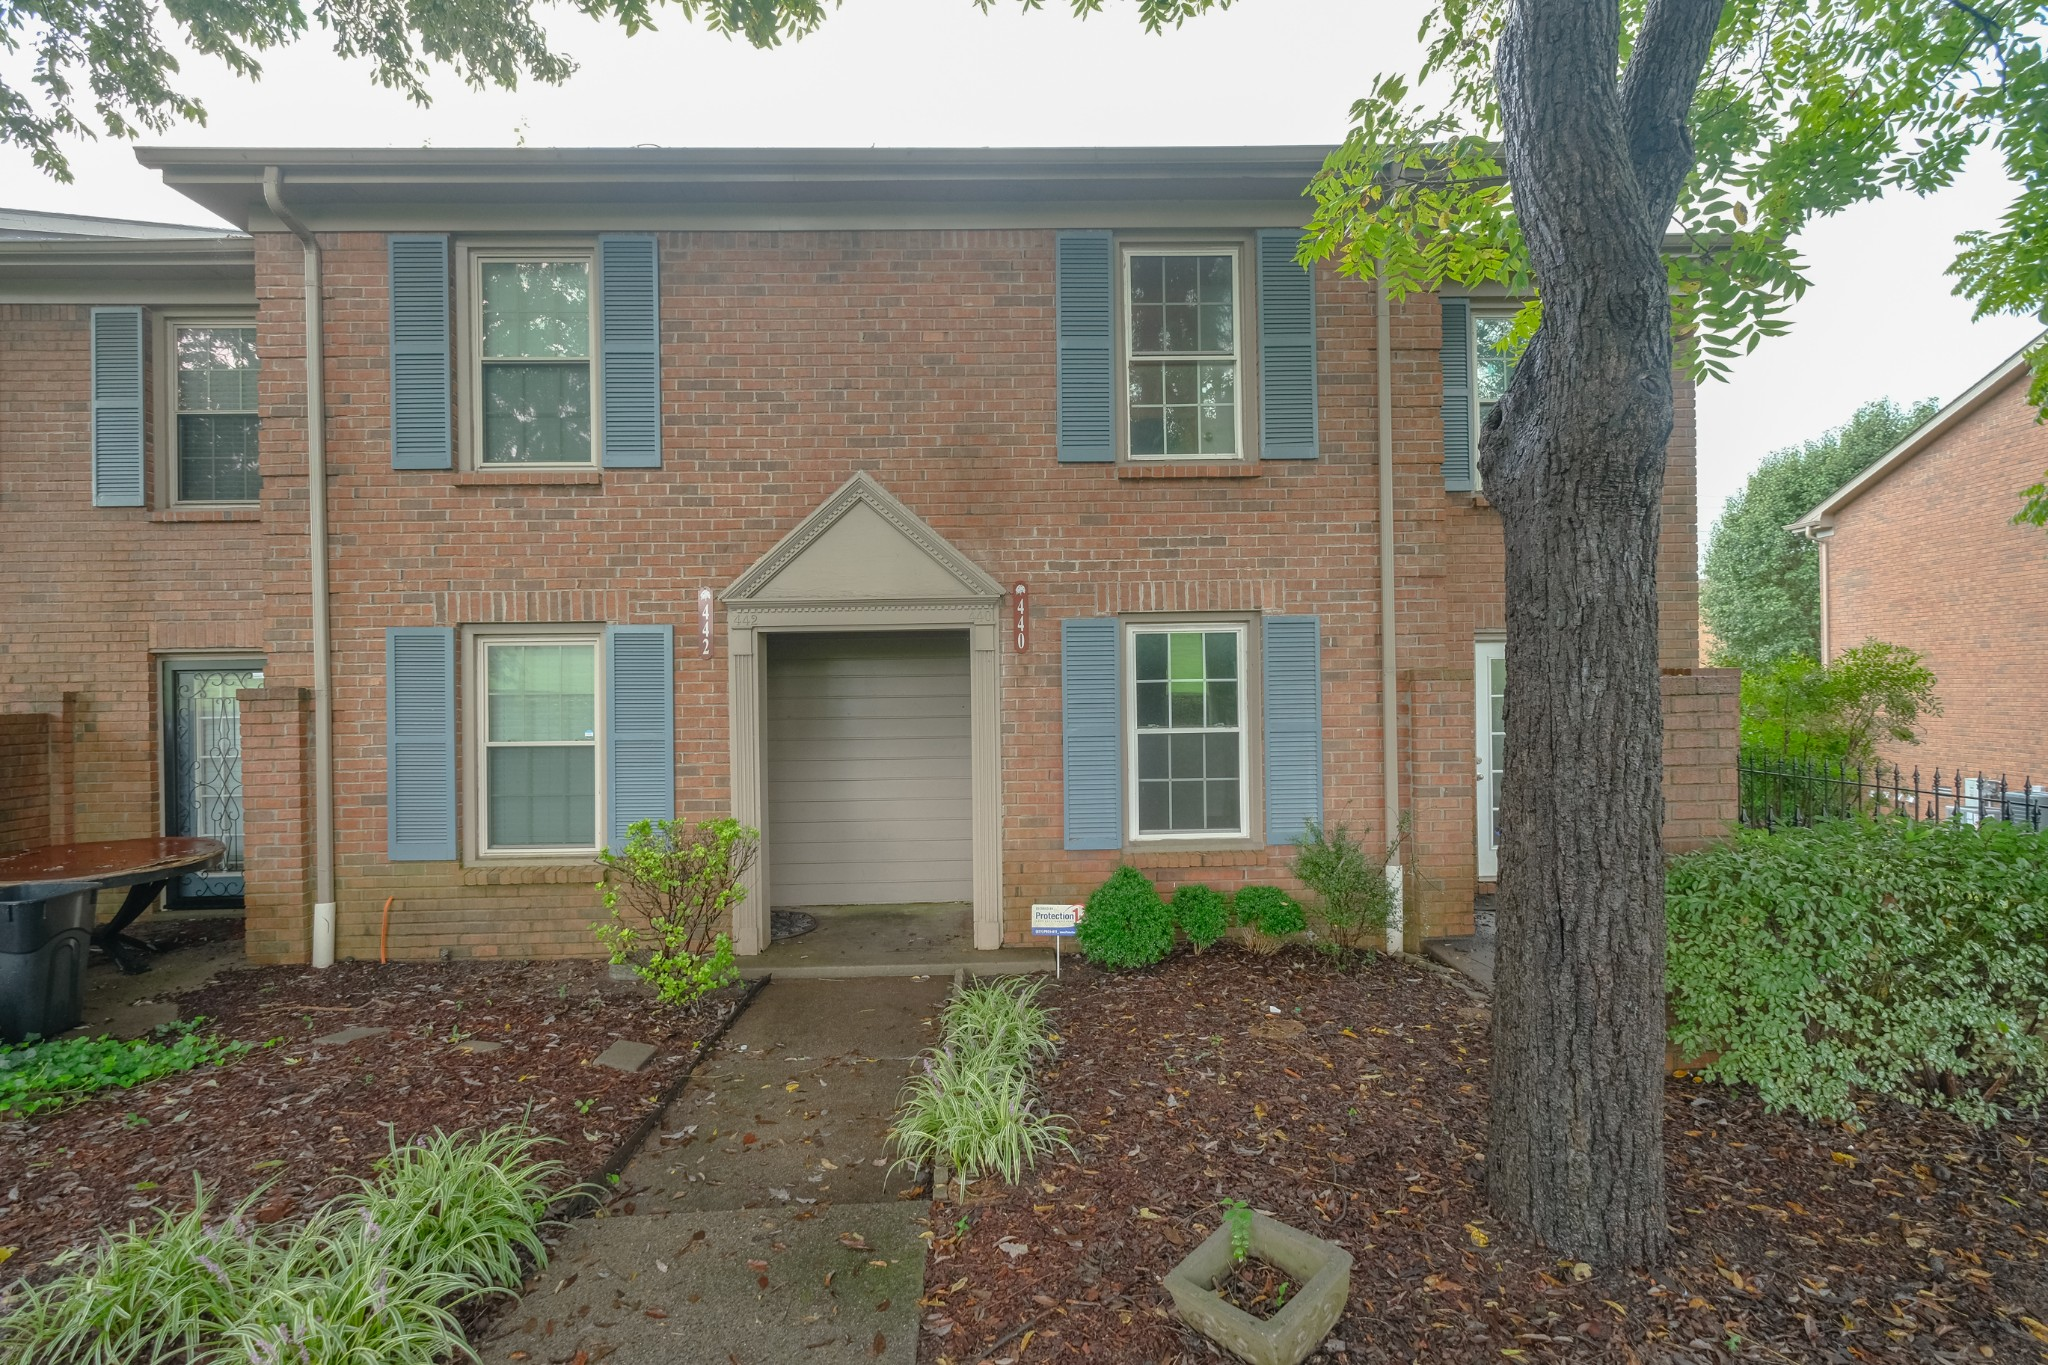 This wonderful end unit condo is conveniently located less than half a mile from I 40. This home has 2 bedrooms, 1.5 bathrooms and is located in Hickory Place. There are lots of hardwoods. Enjoy your own courtyard patio.